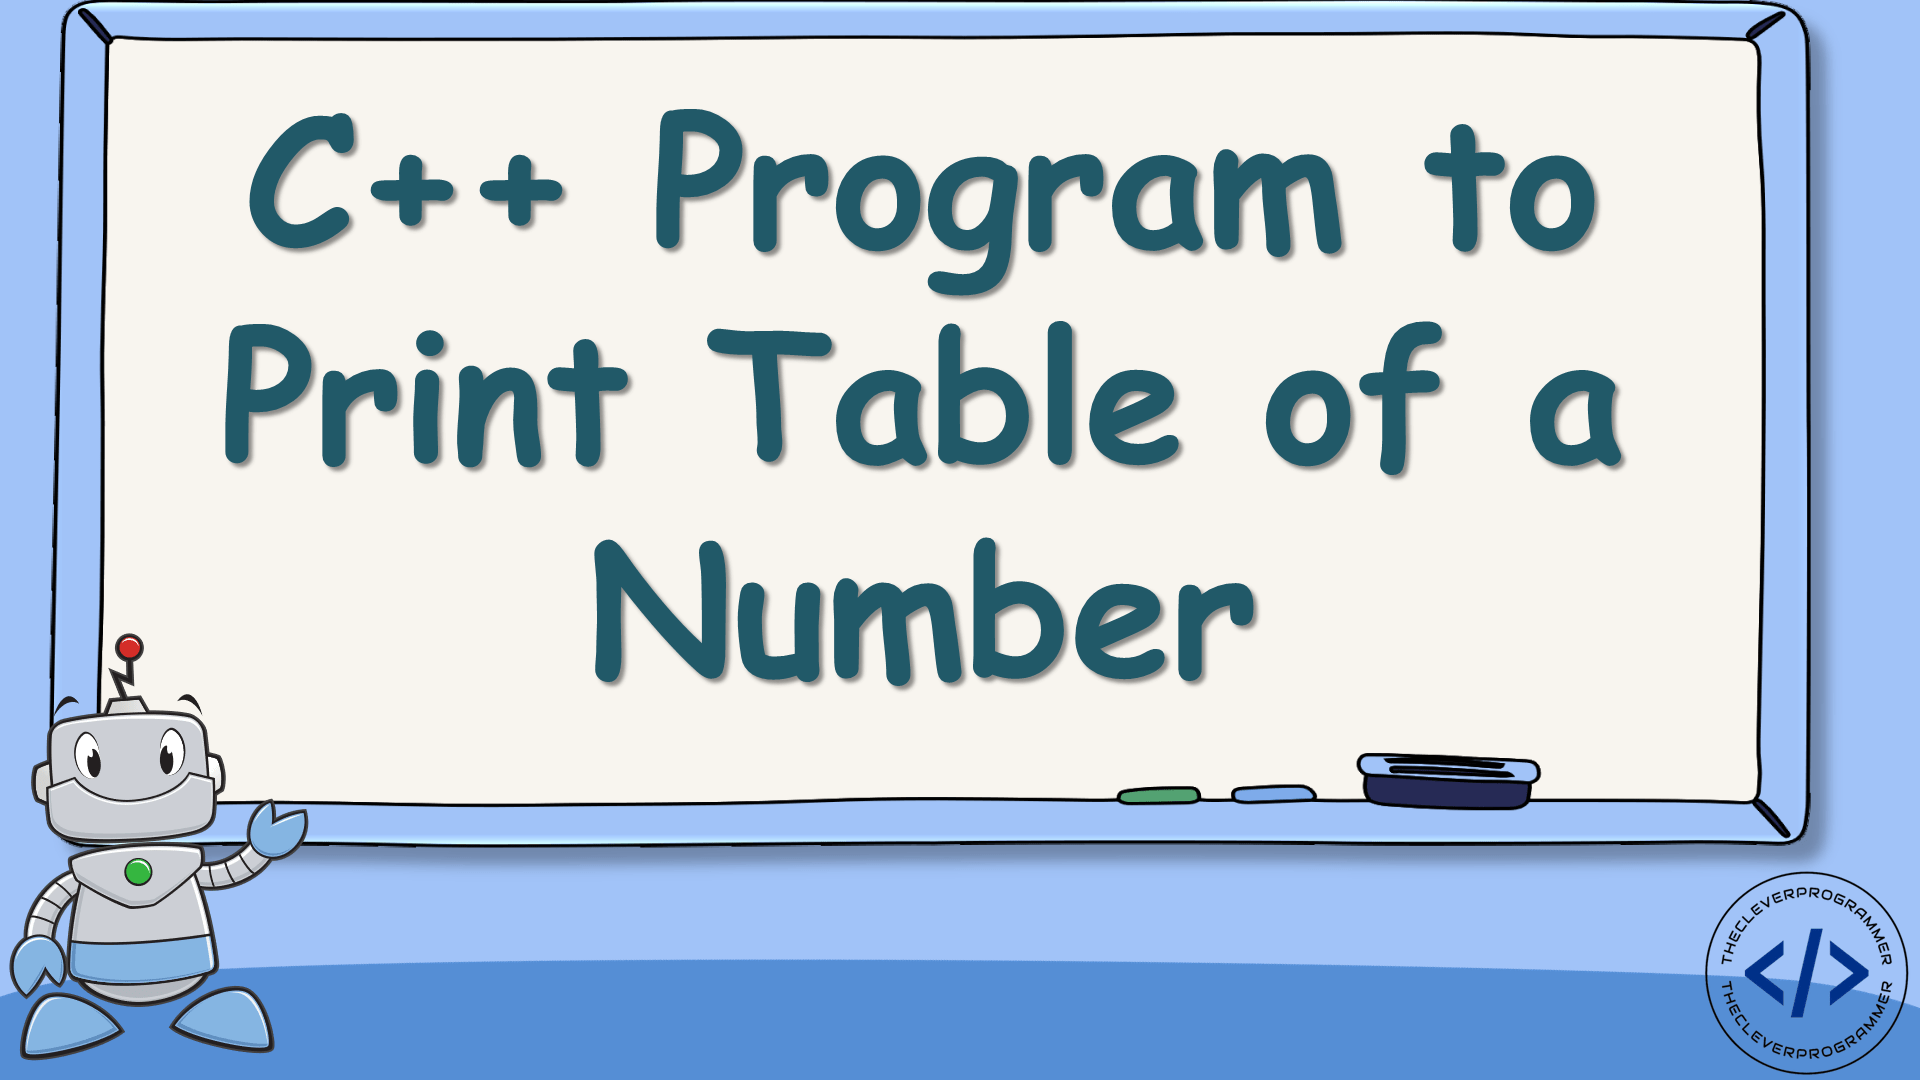 C++ Program to Print the Table of a Number